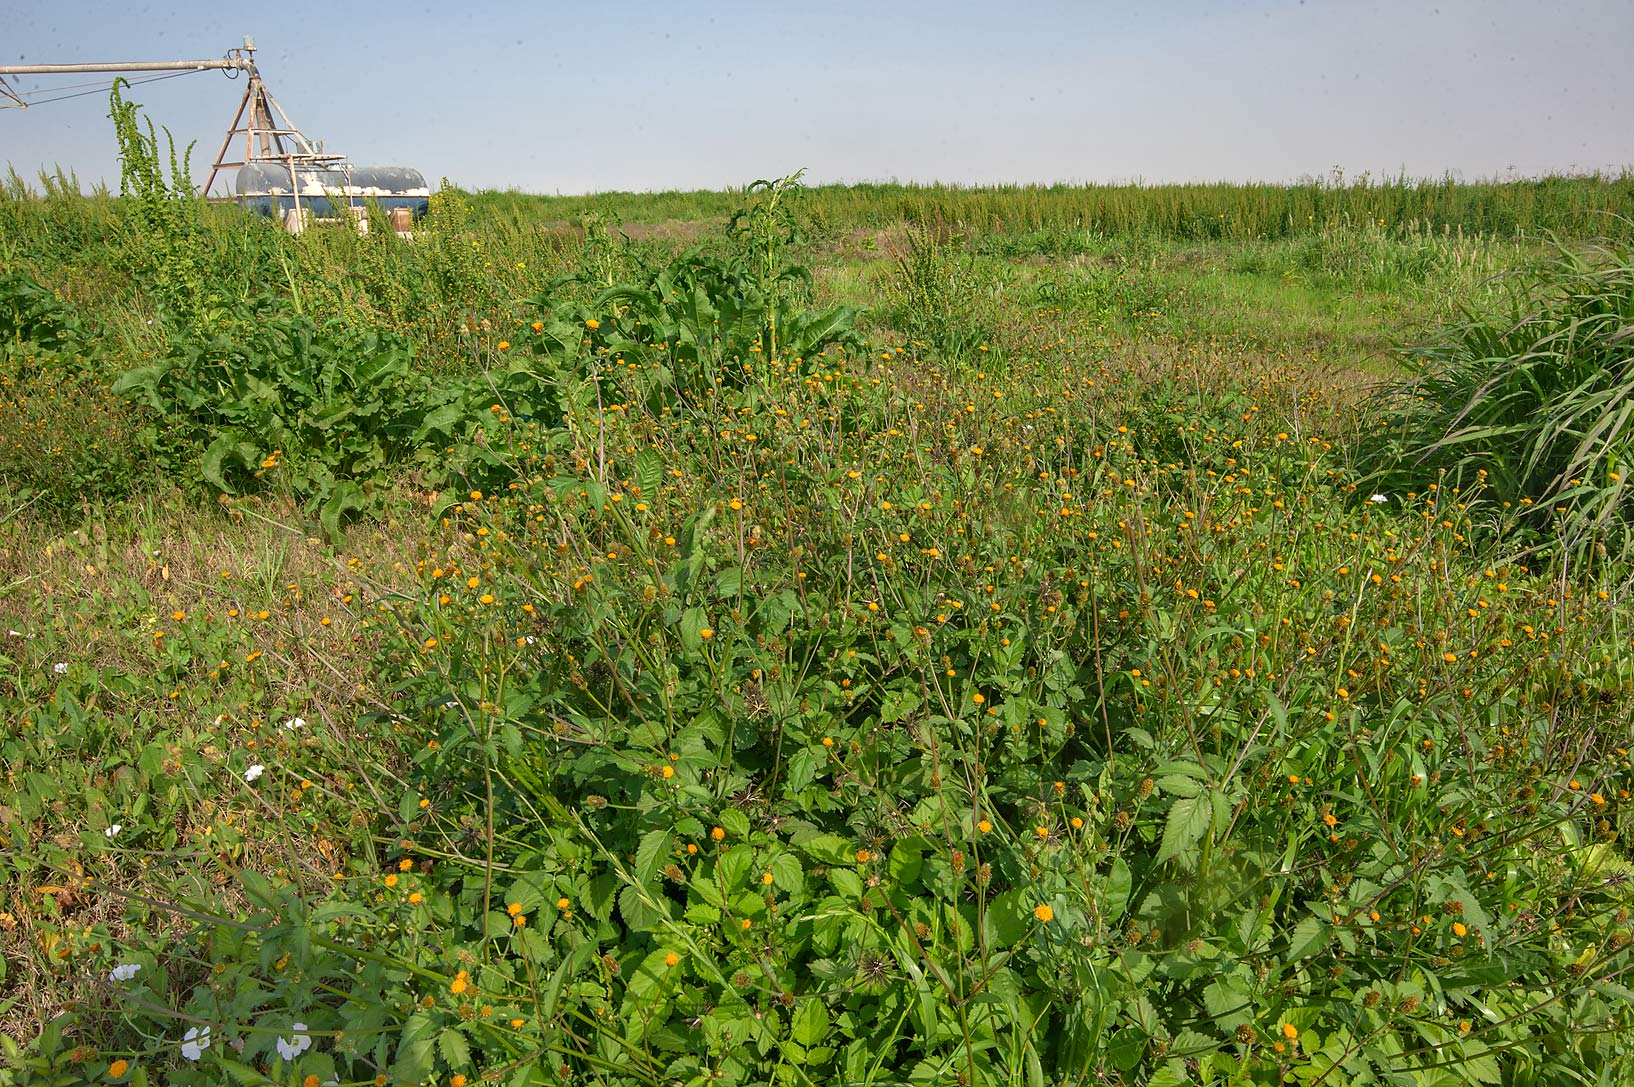 Growth of Spanish Needle (Bidens pilosa) in wet...in Irkhaya (Irkaya) Farms. Qatar